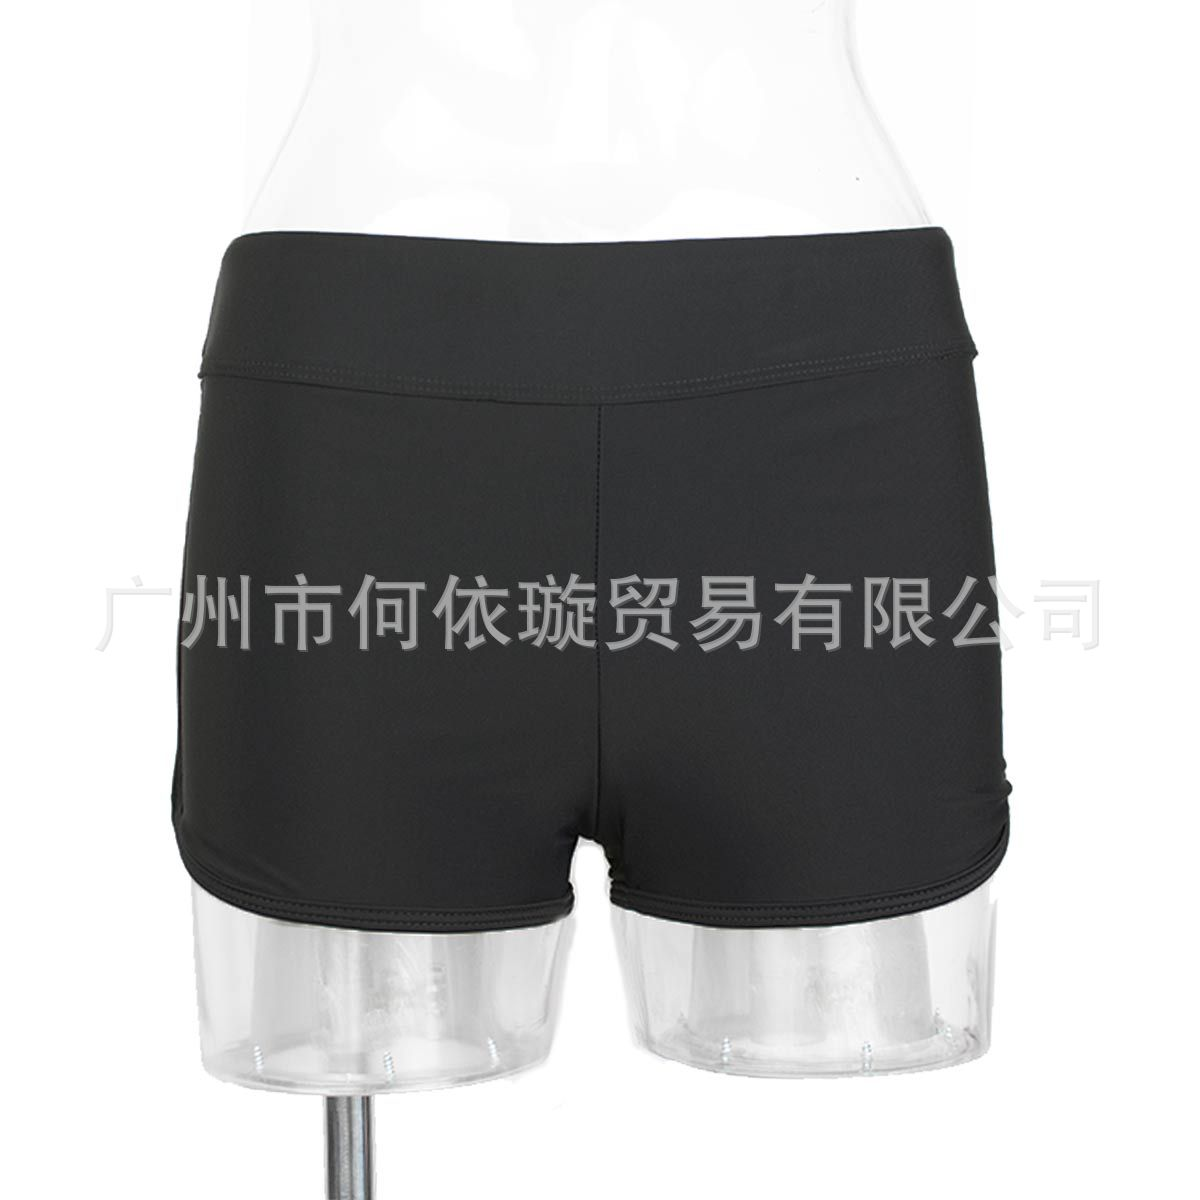 2020 Bathing Suit Europe And America Hot Selling Classic Swimming Trunks Black And White With Pattern Large Size Plus-size Cloth